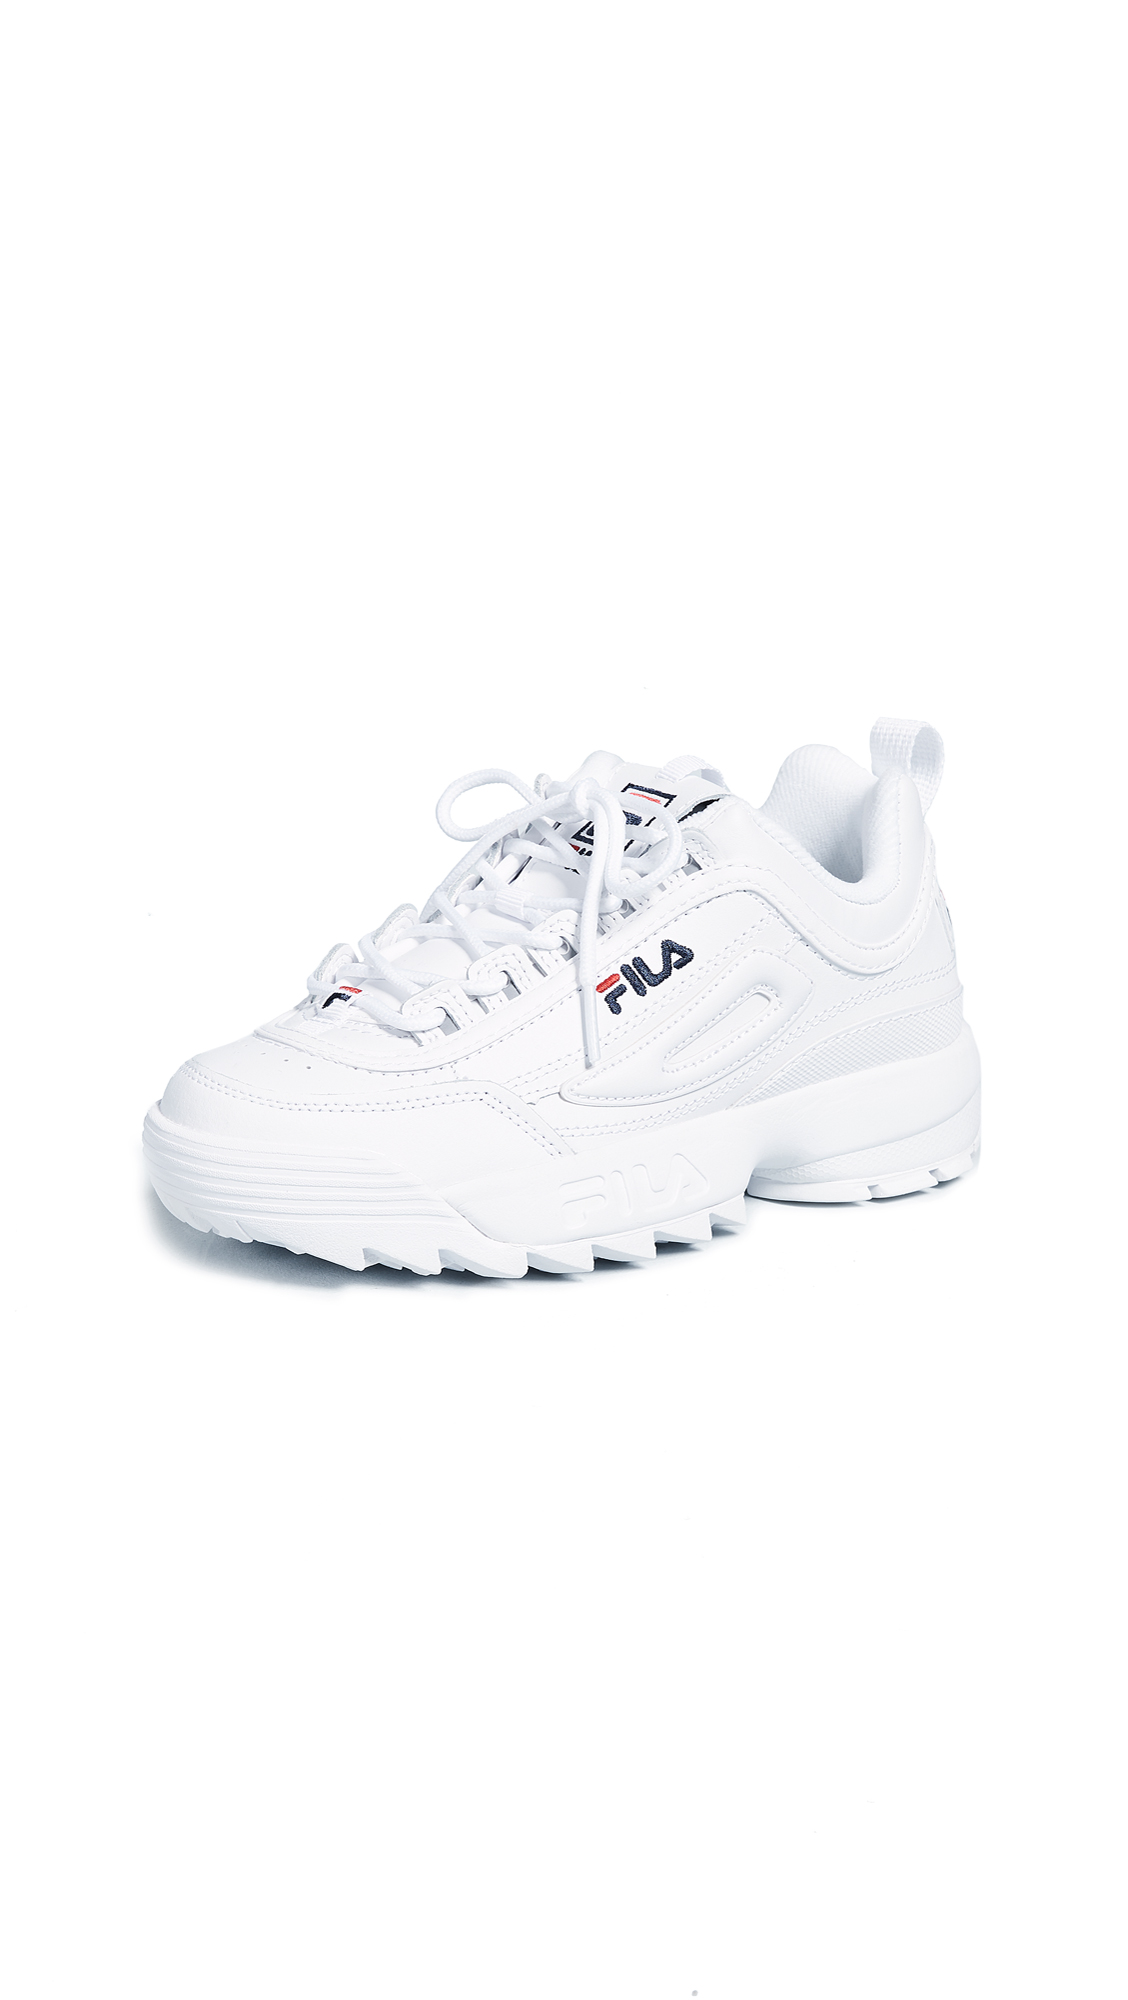 Fila Disruptor II Premium Sneakers - White/Fila Navy/Fila Red